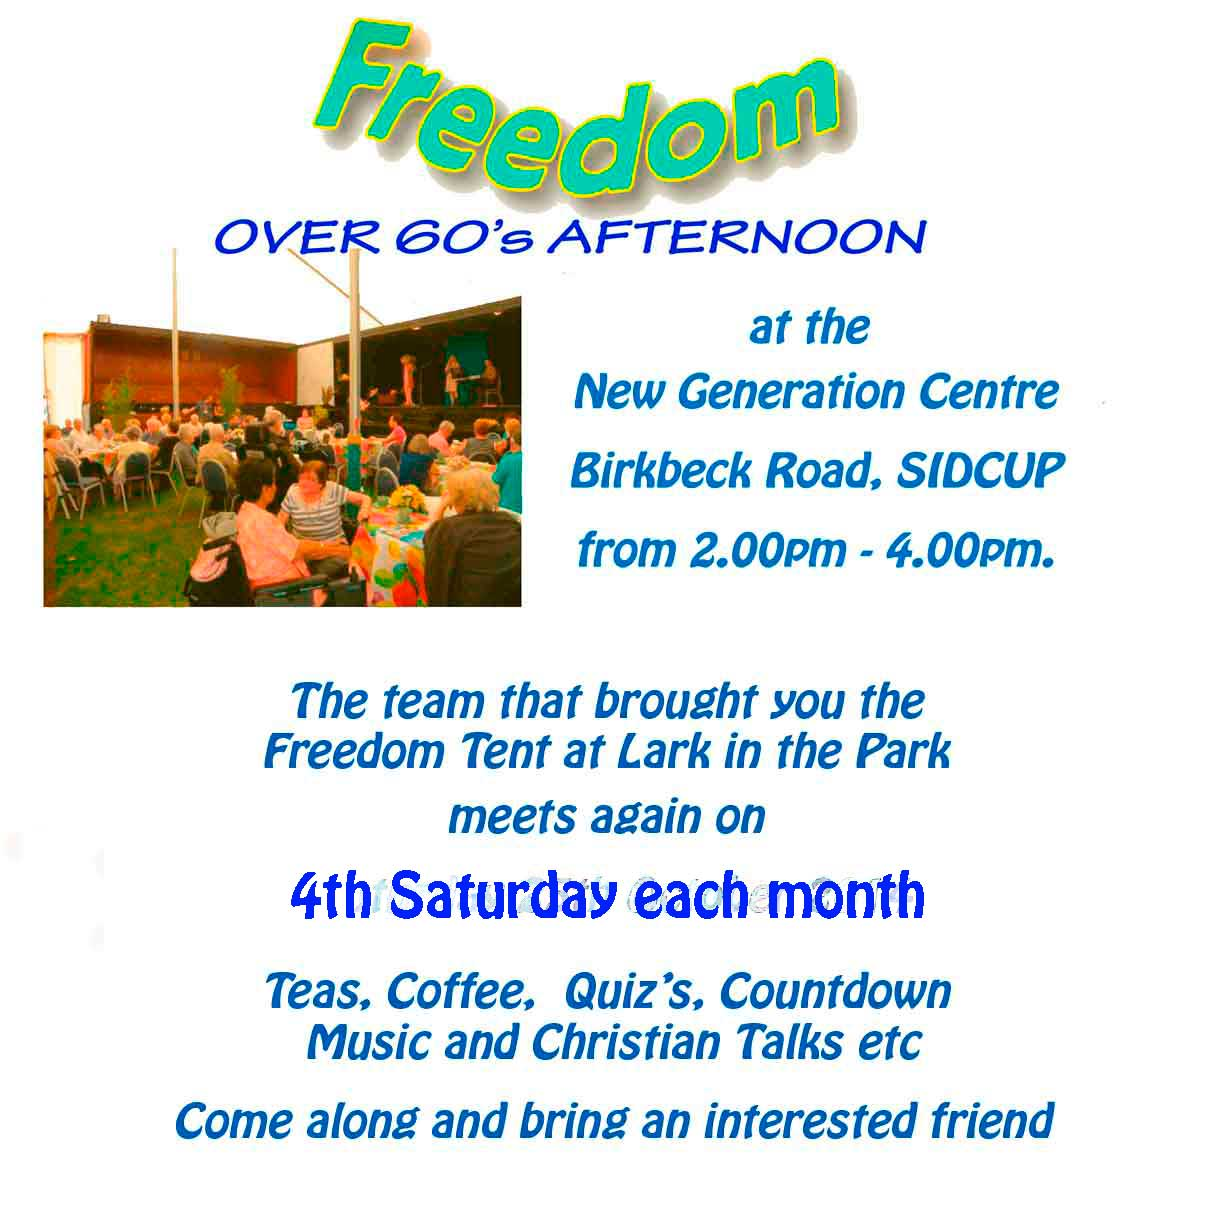 Lark in the Park Freedom (Over 60's) Afternoon